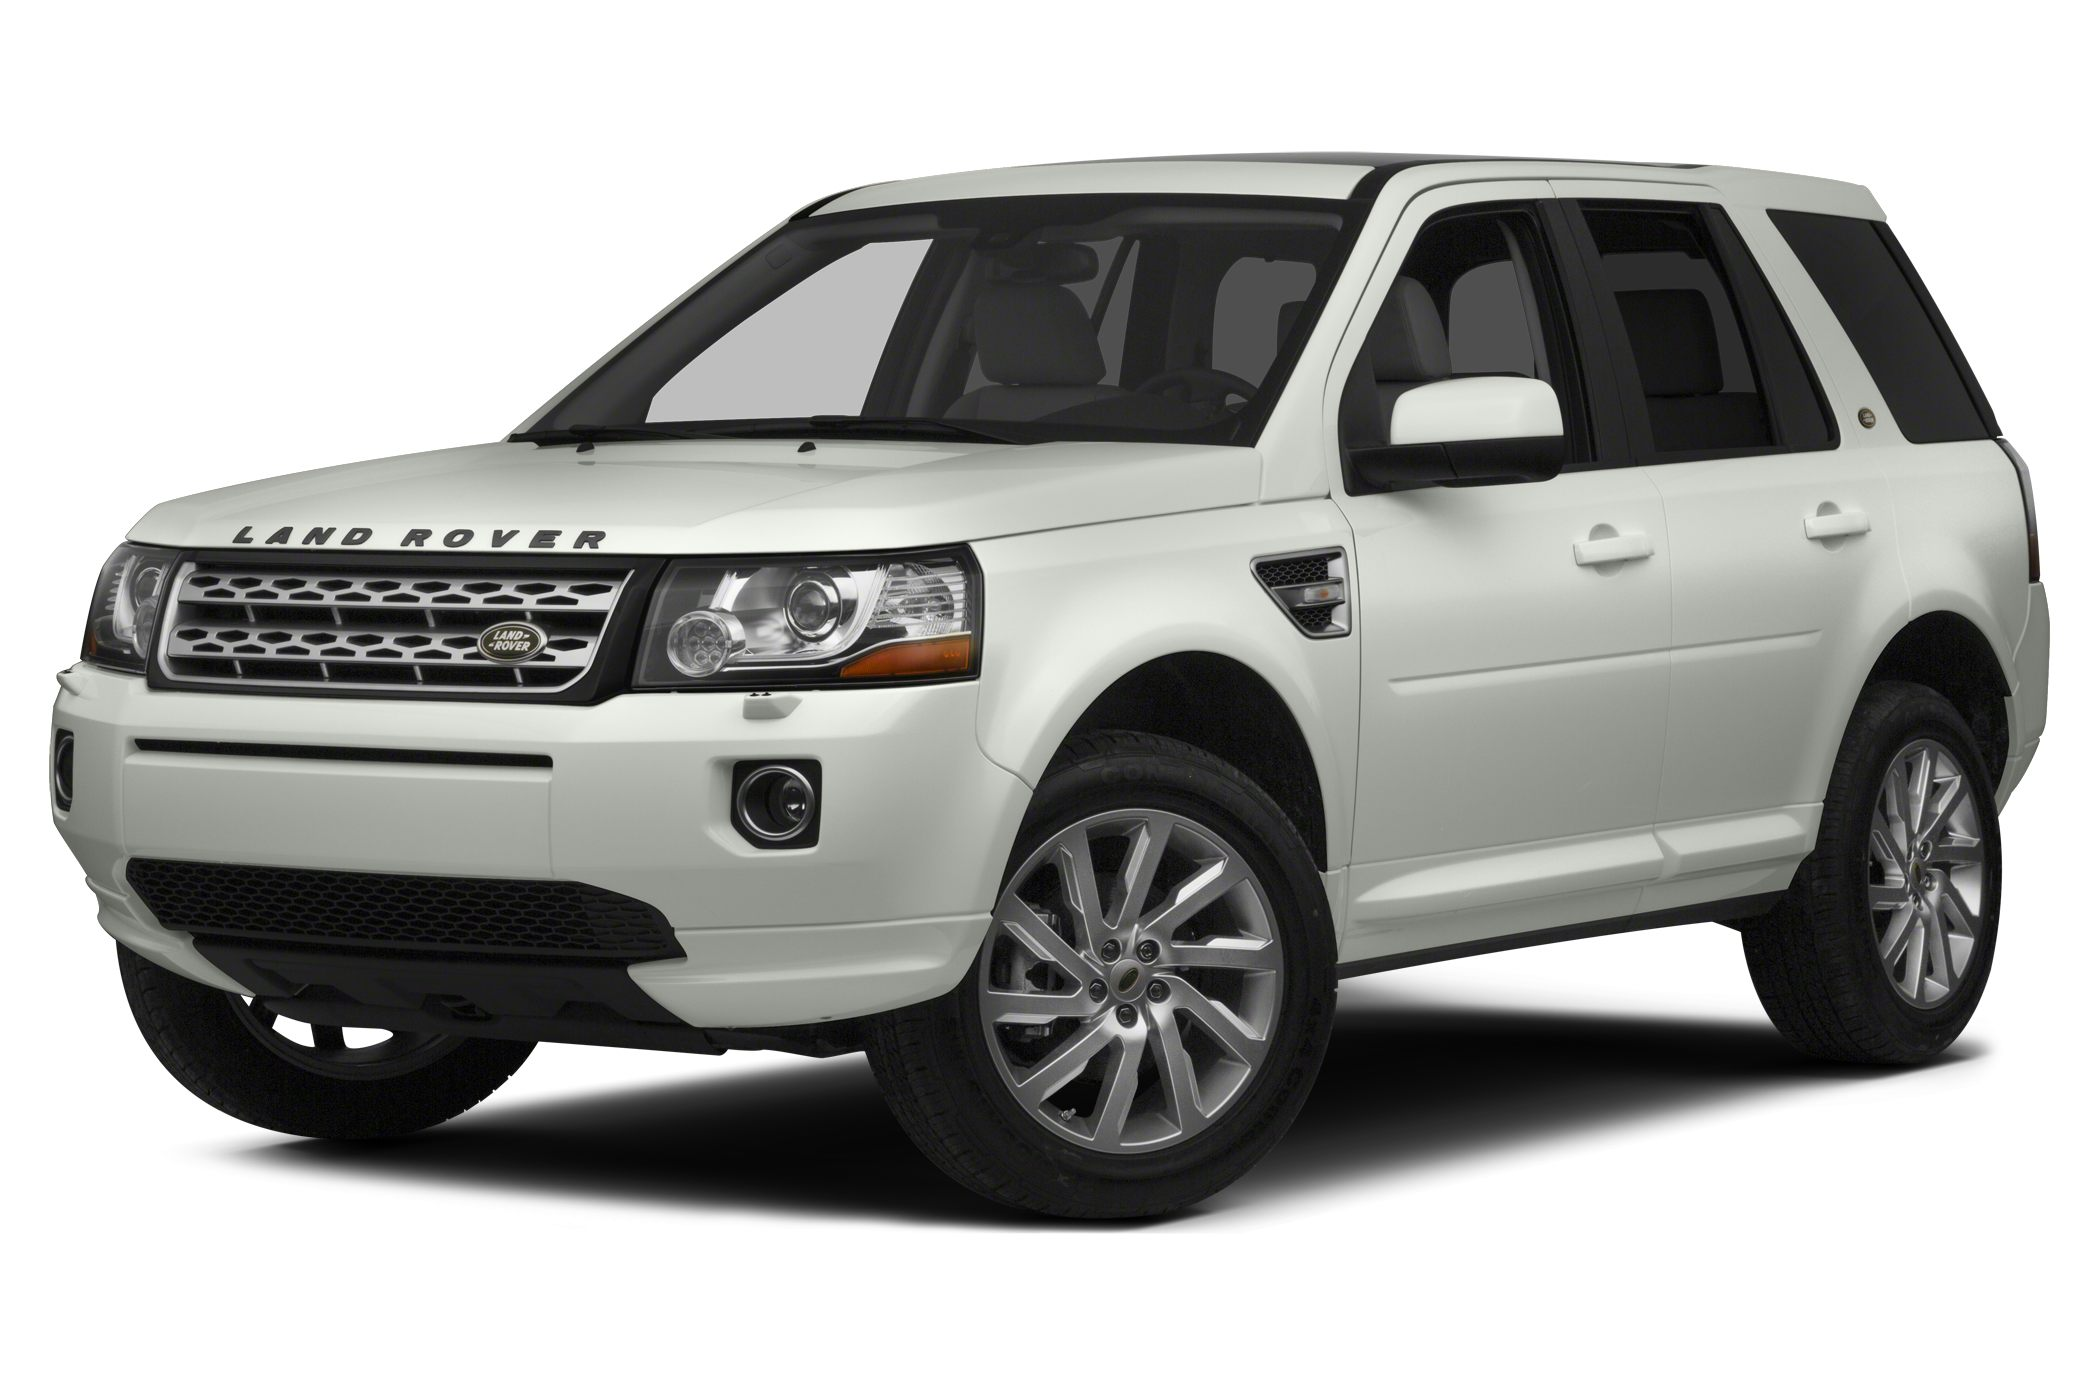 Land Rover Prices 2014 21 High Resolution Car Wallpaper